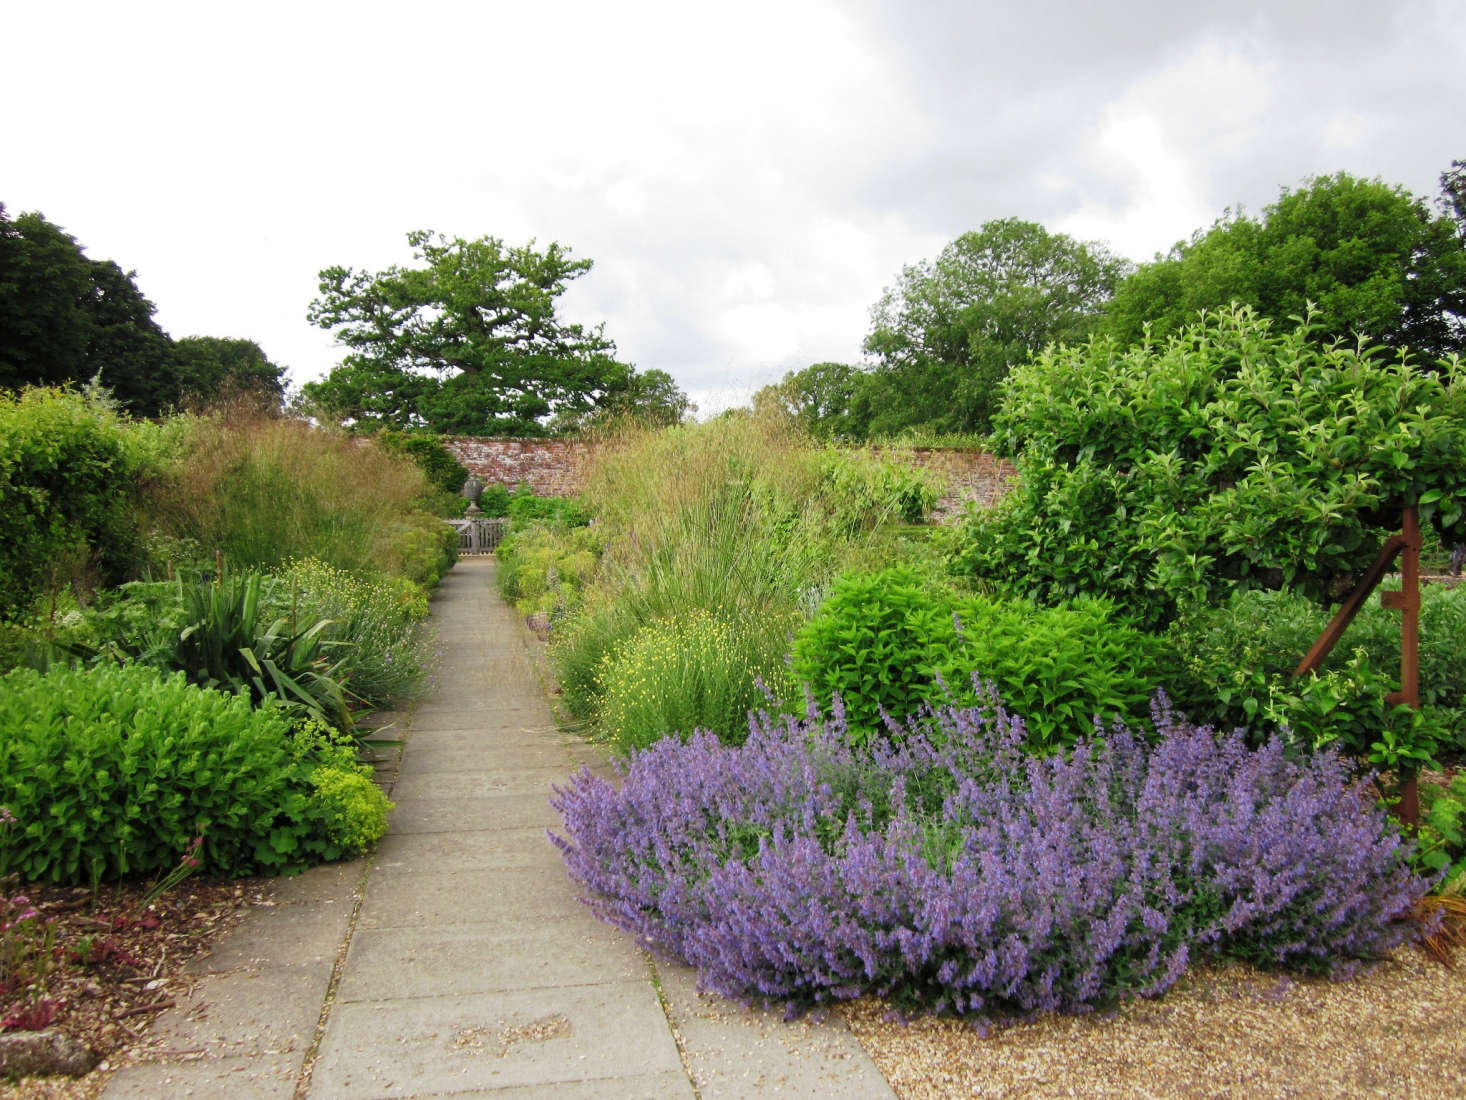 Lavender In Bloom In The Hinton Ampner Gardens In Hampshire. Photograph By  Leimenide Via Flickr